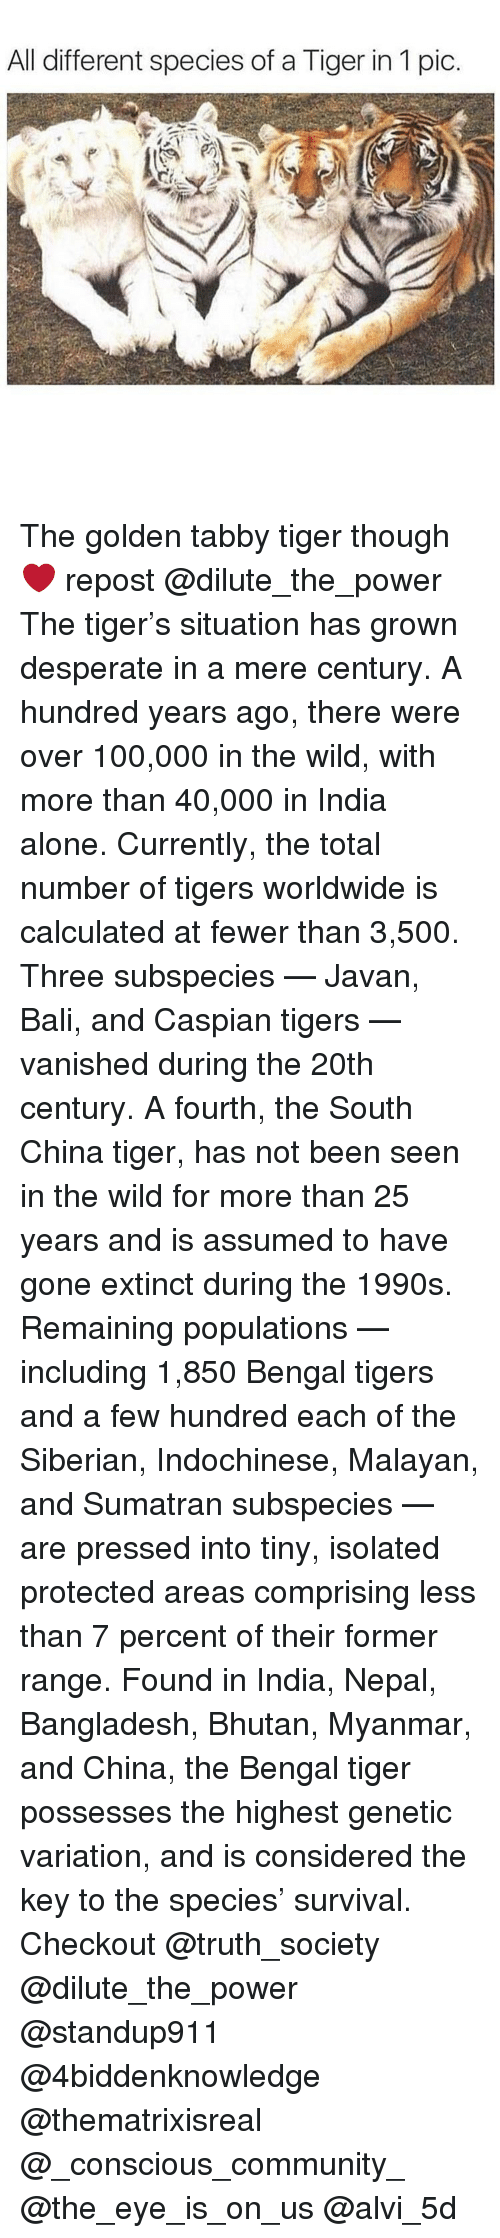 Calculation: All different species of a Tiger in 1 pic The golden tabby tiger though ❤️ repost @dilute_the_power The tiger's situation has grown desperate in a mere century. A hundred years ago, there were over 100,000 in the wild, with more than 40,000 in India alone. Currently, the total number of tigers worldwide is calculated at fewer than 3,500. Three subspecies — Javan, Bali, and Caspian tigers — vanished during the 20th century. A fourth, the South China tiger, has not been seen in the wild for more than 25 years and is assumed to have gone extinct during the 1990s. Remaining populations — including 1,850 Bengal tigers and a few hundred each of the Siberian, Indochinese, Malayan, and Sumatran subspecies — are pressed into tiny, isolated protected areas comprising less than 7 percent of their former range. Found in India, Nepal, Bangladesh, Bhutan, Myanmar, and China, the Bengal tiger possesses the highest genetic variation, and is considered the key to the species' survival. Checkout @truth_society @dilute_the_power @standup911 @4biddenknowledge @thematrixisreal @_conscious_community_ @the_eye_is_on_us @alvi_5d